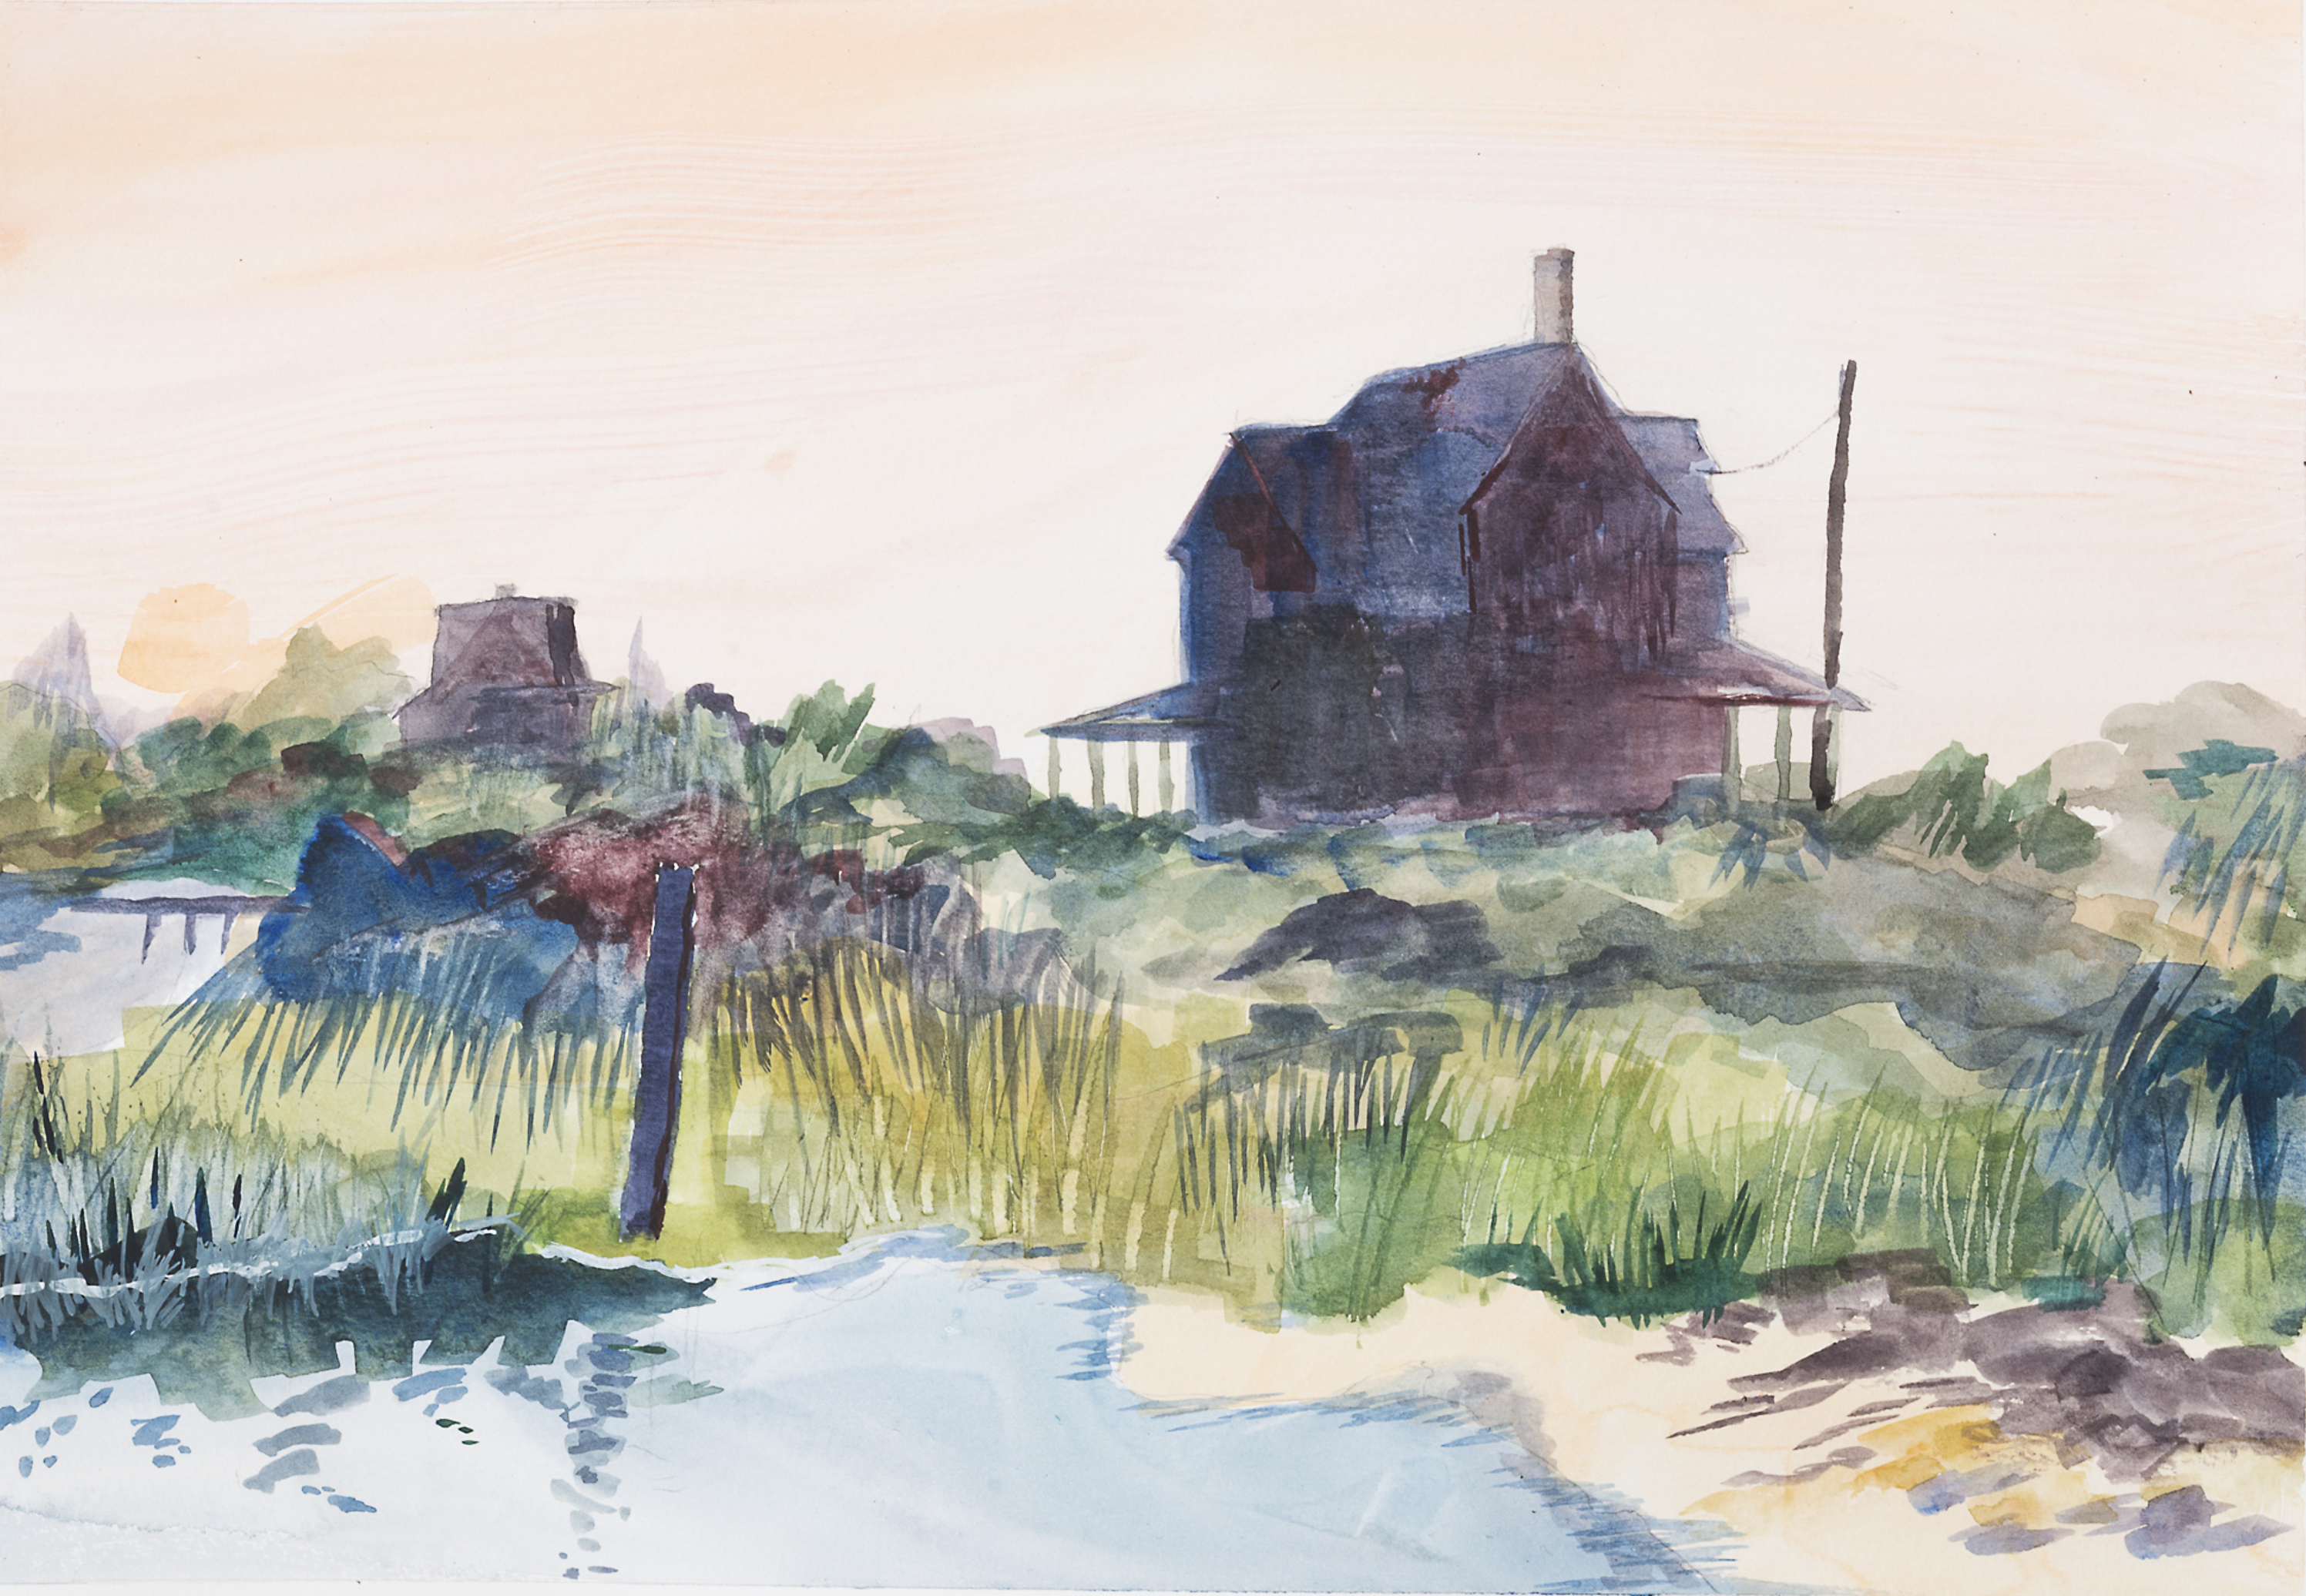 House at the Shore watercolor painting